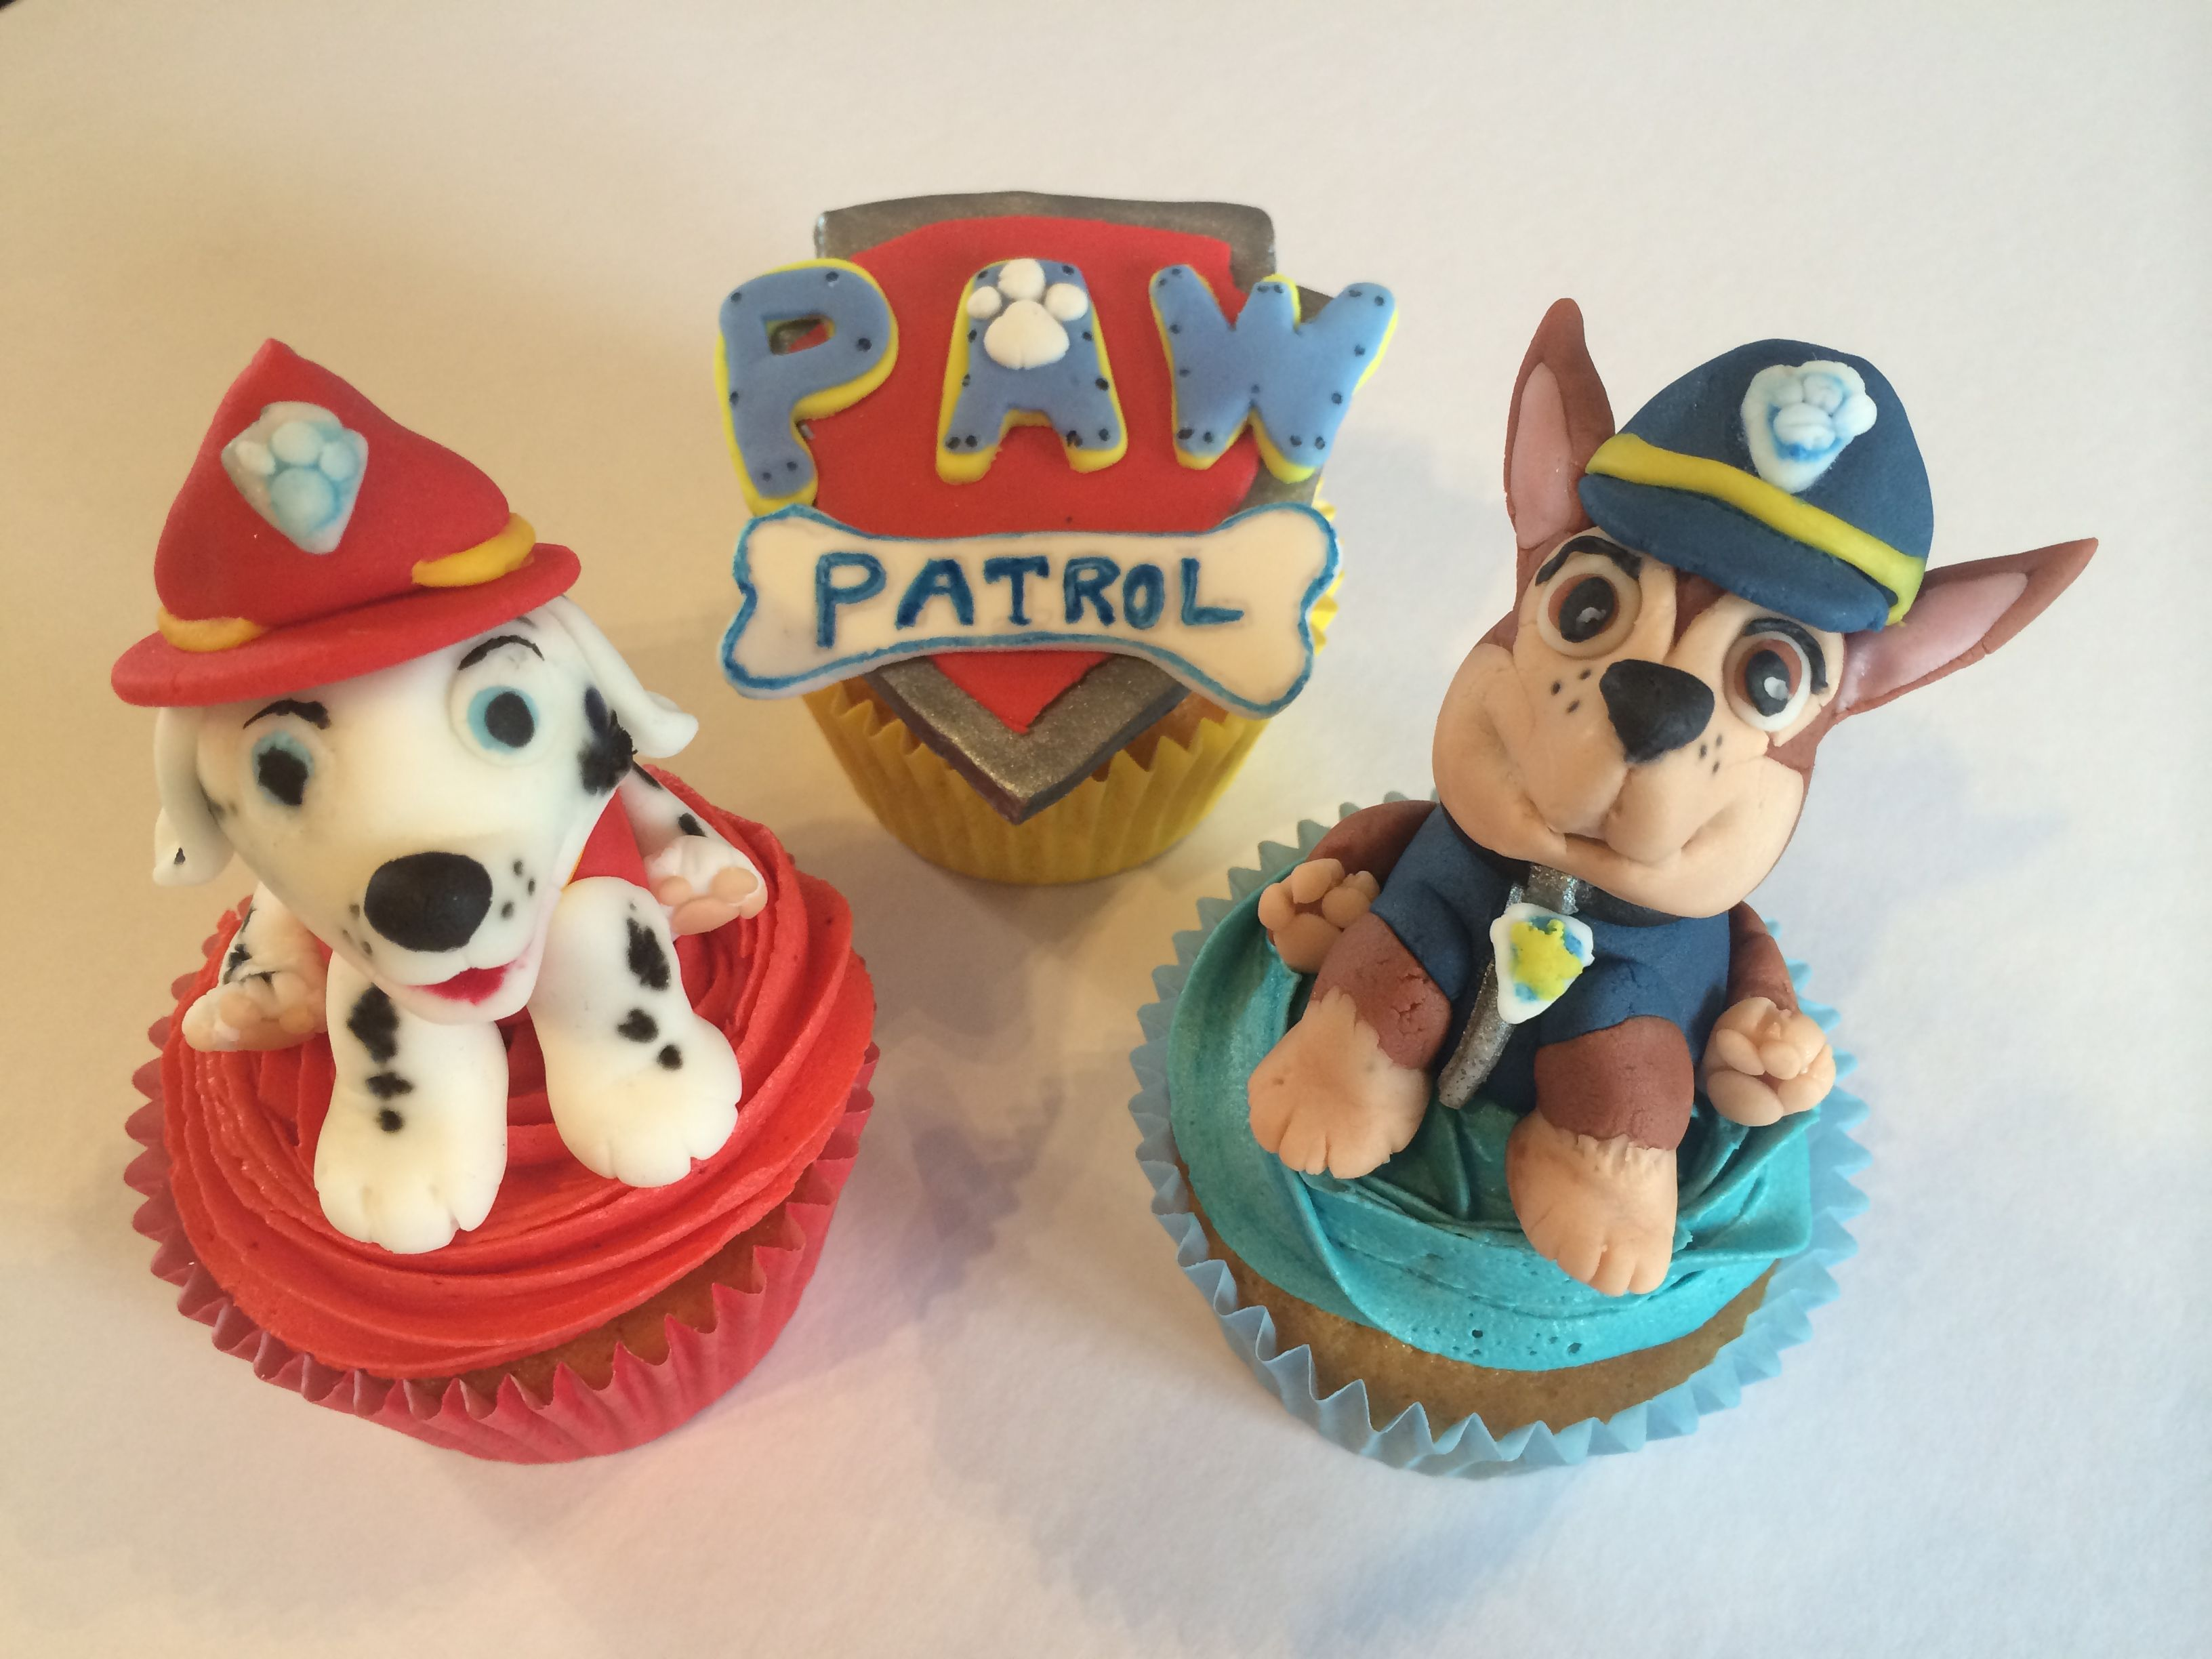 Kids Toys Action Figure: Handmade Fondant Chase & Marshall Dog/puppy Characters